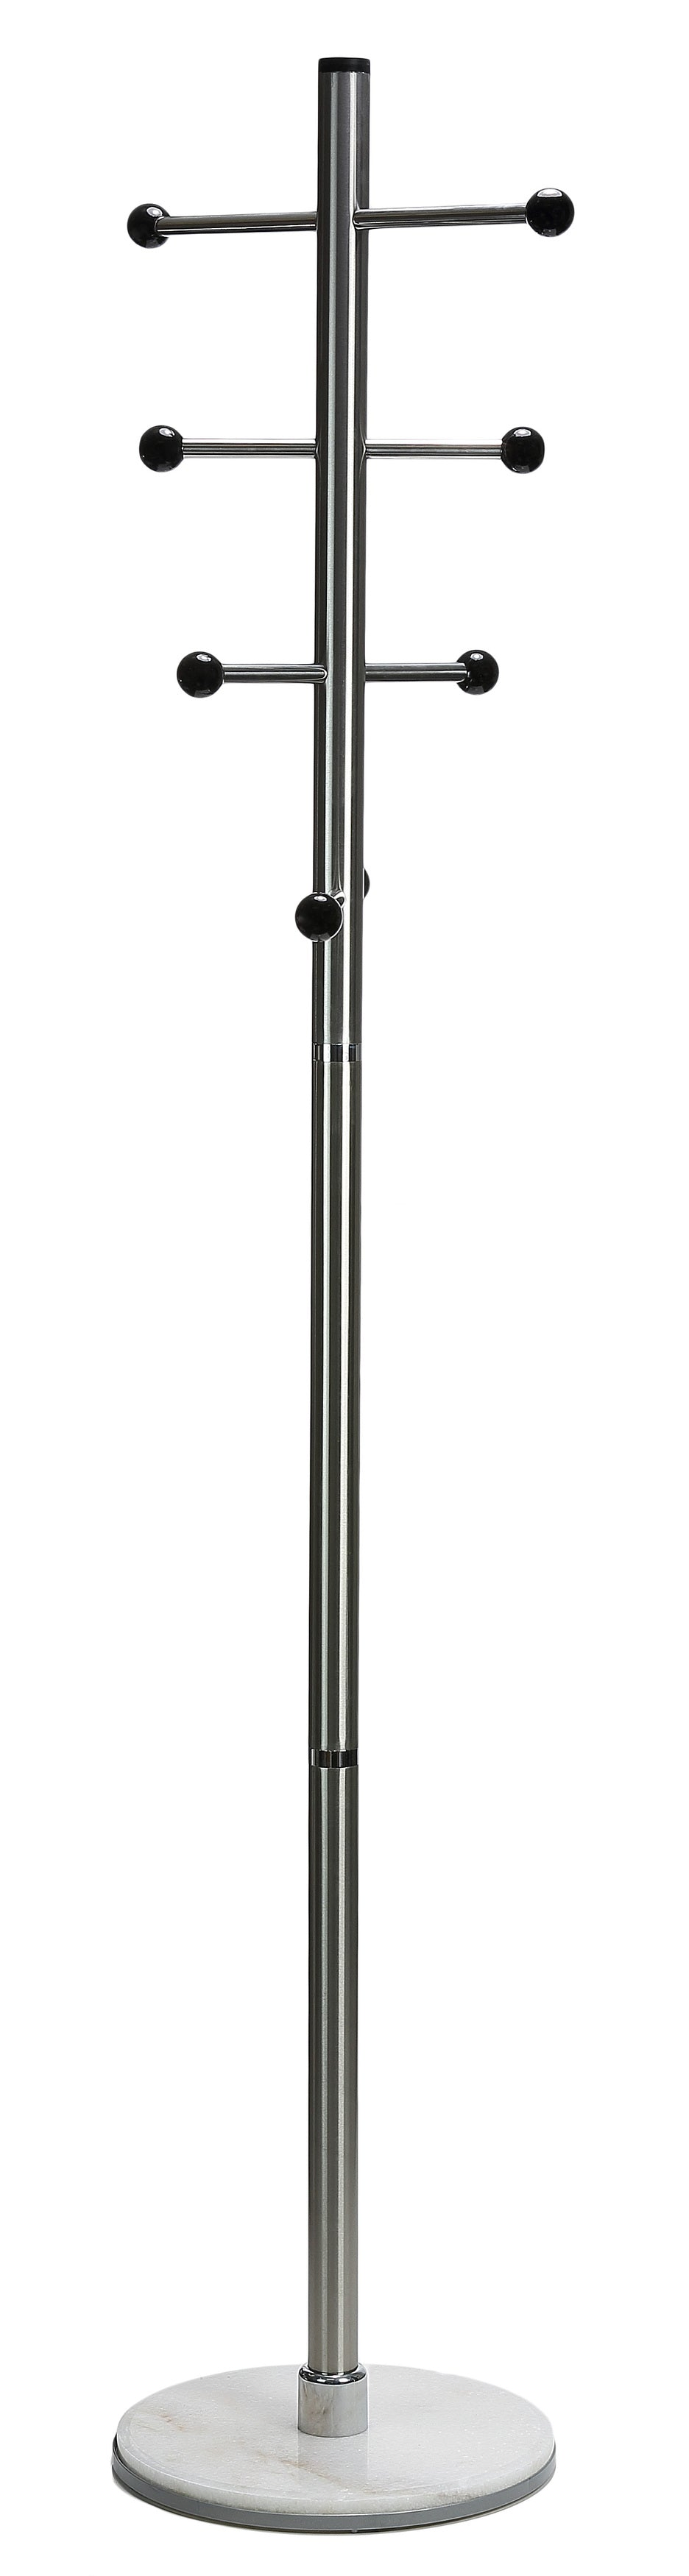 Cortesi Home Antenna Black Six Foot Chrome and Wood Coat Rack, Light Marble